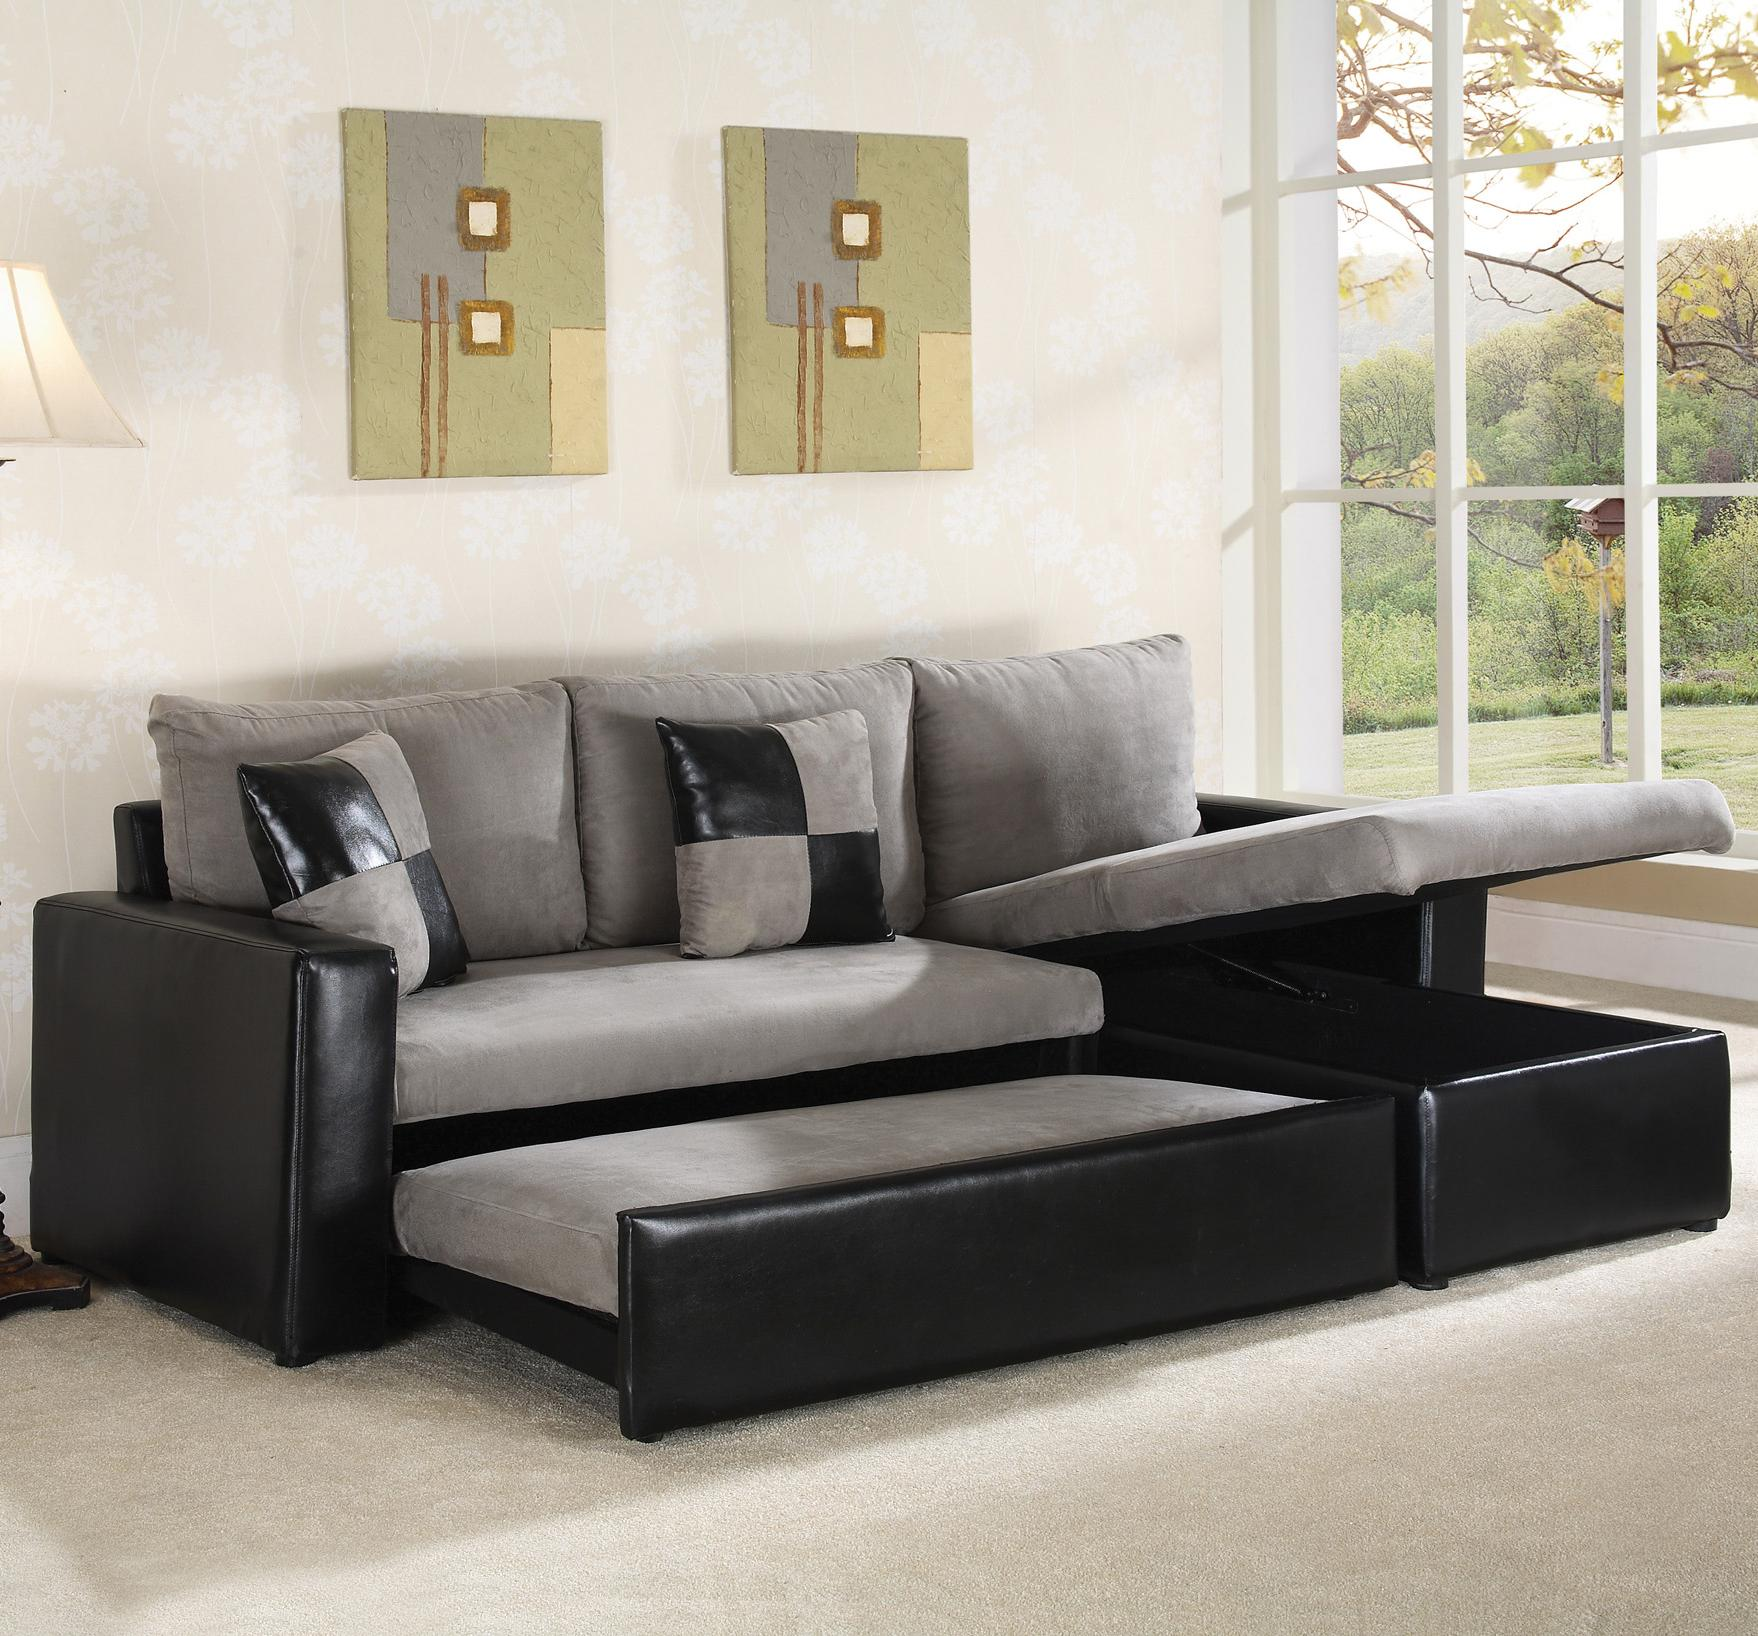 Top 5 Benefits For Sleeper Sofas The Magic Of Pullout Beds ~ Space Saving Sleeper Sofa